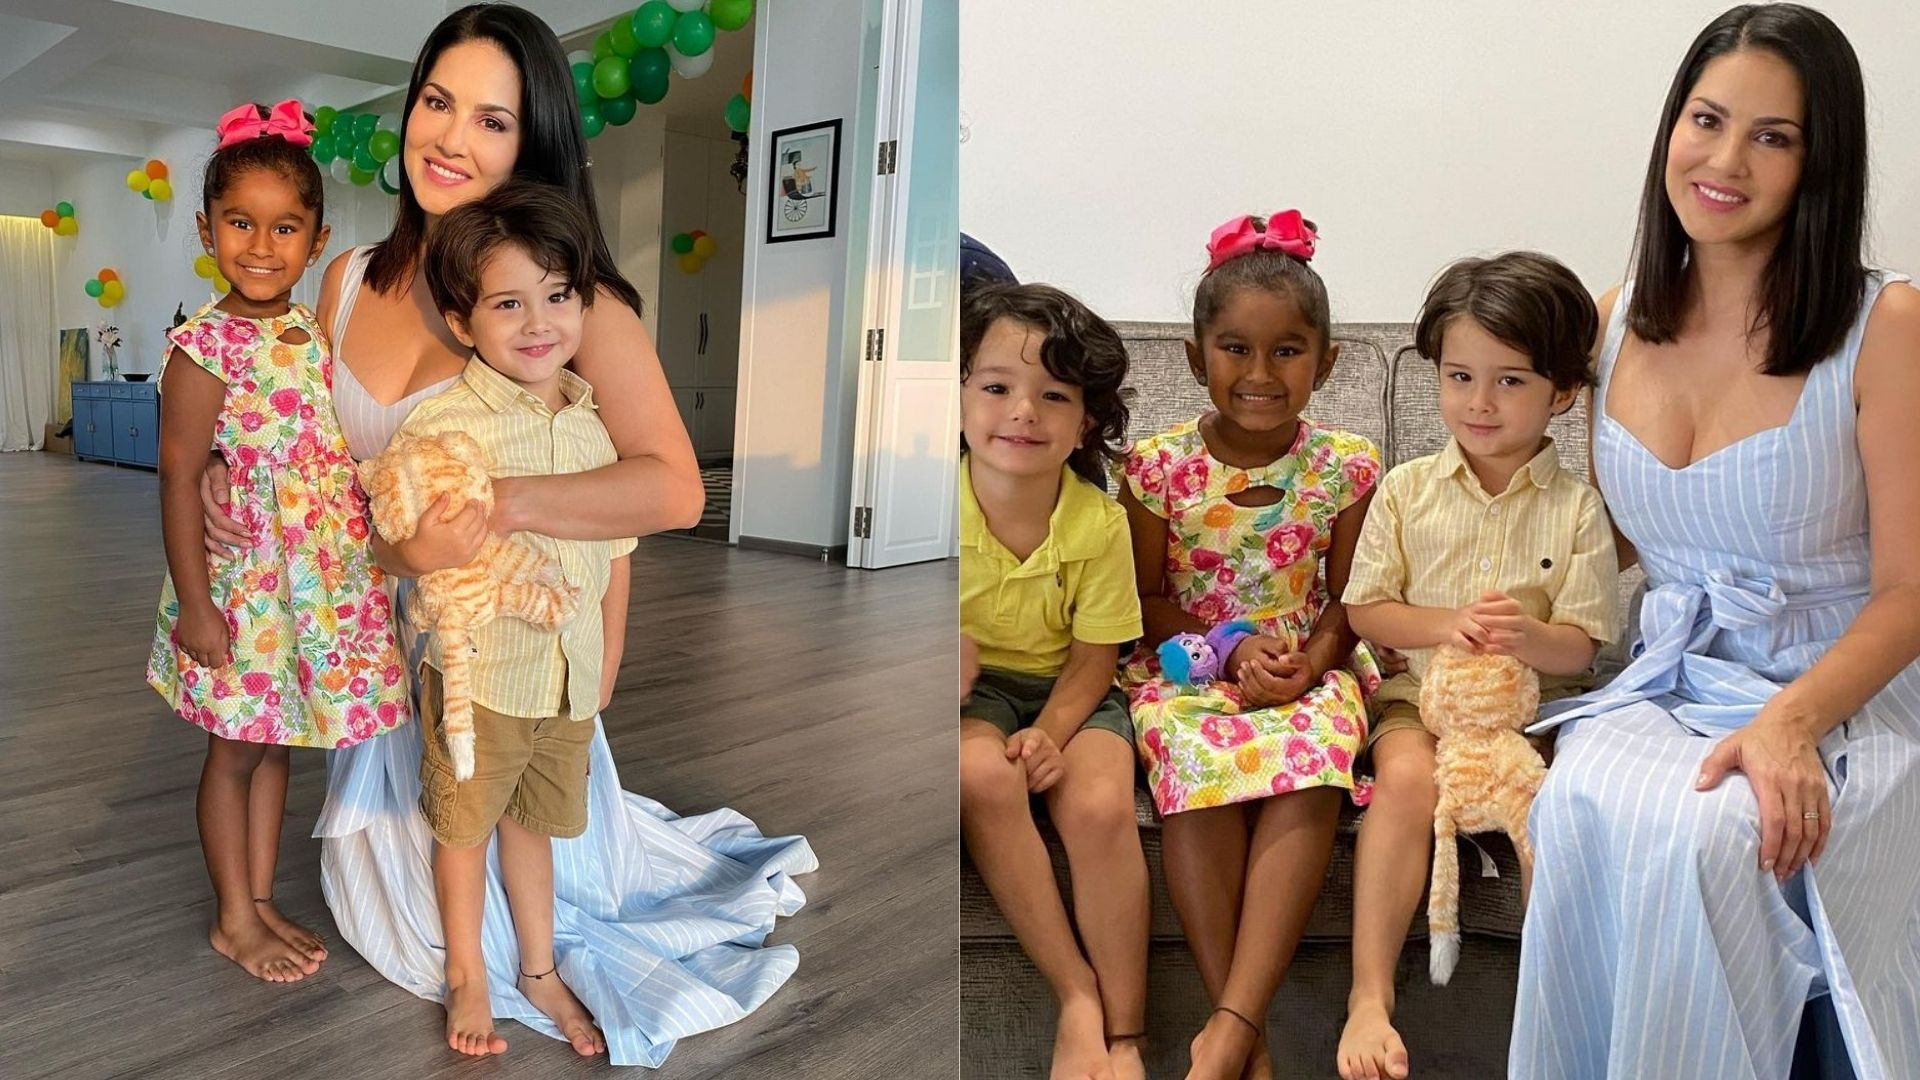 Sun-Day Is A Fun-Filled Day For Sunny Leone With Her Kids; Check Out The Adorable Images